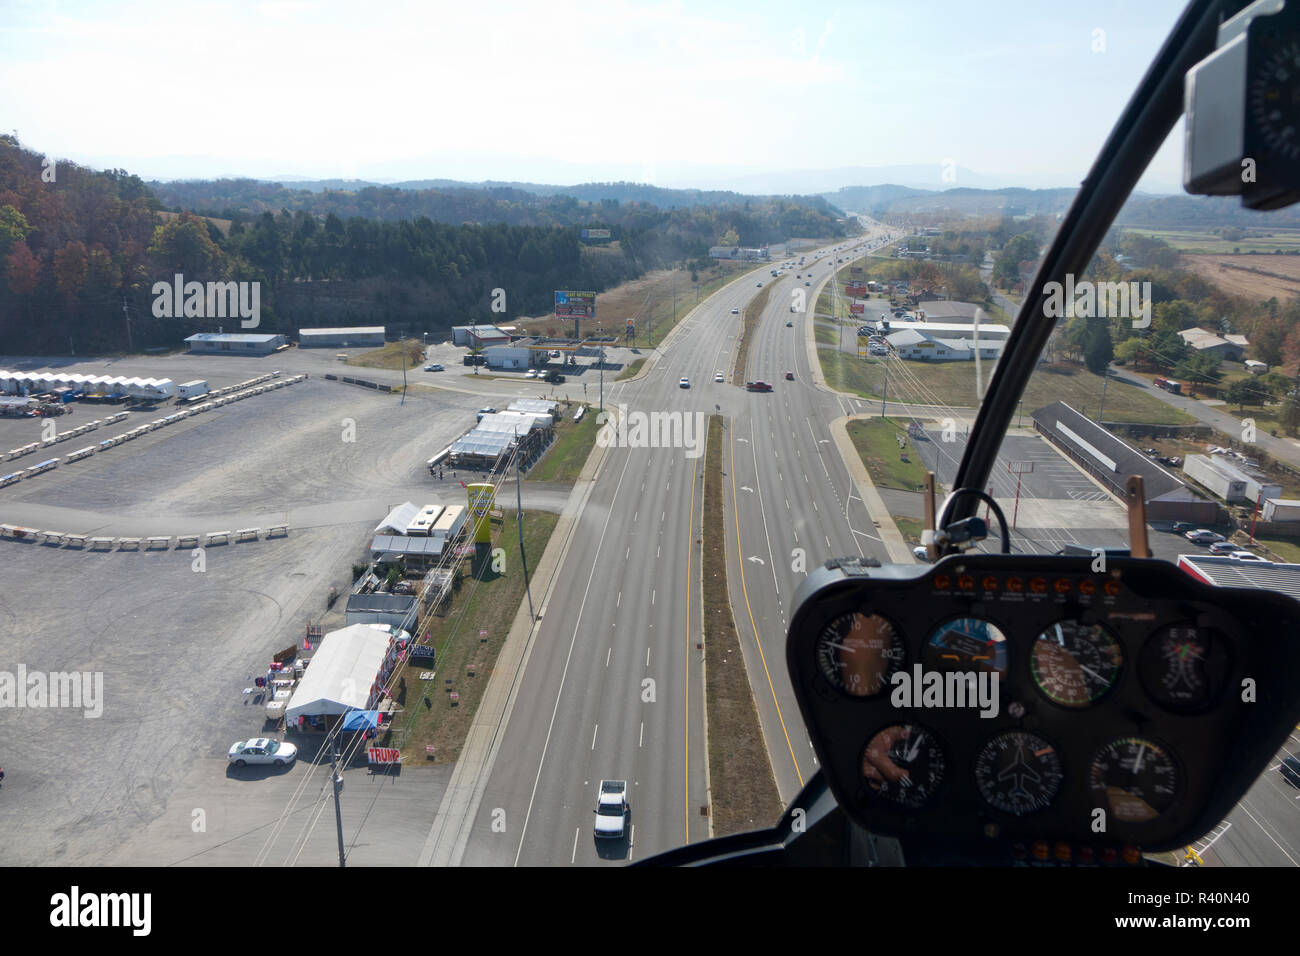 Sightseeing helicopter over Sevierville, Tennessee, heading for the Great Smoky Mountain National Park Stock Photo